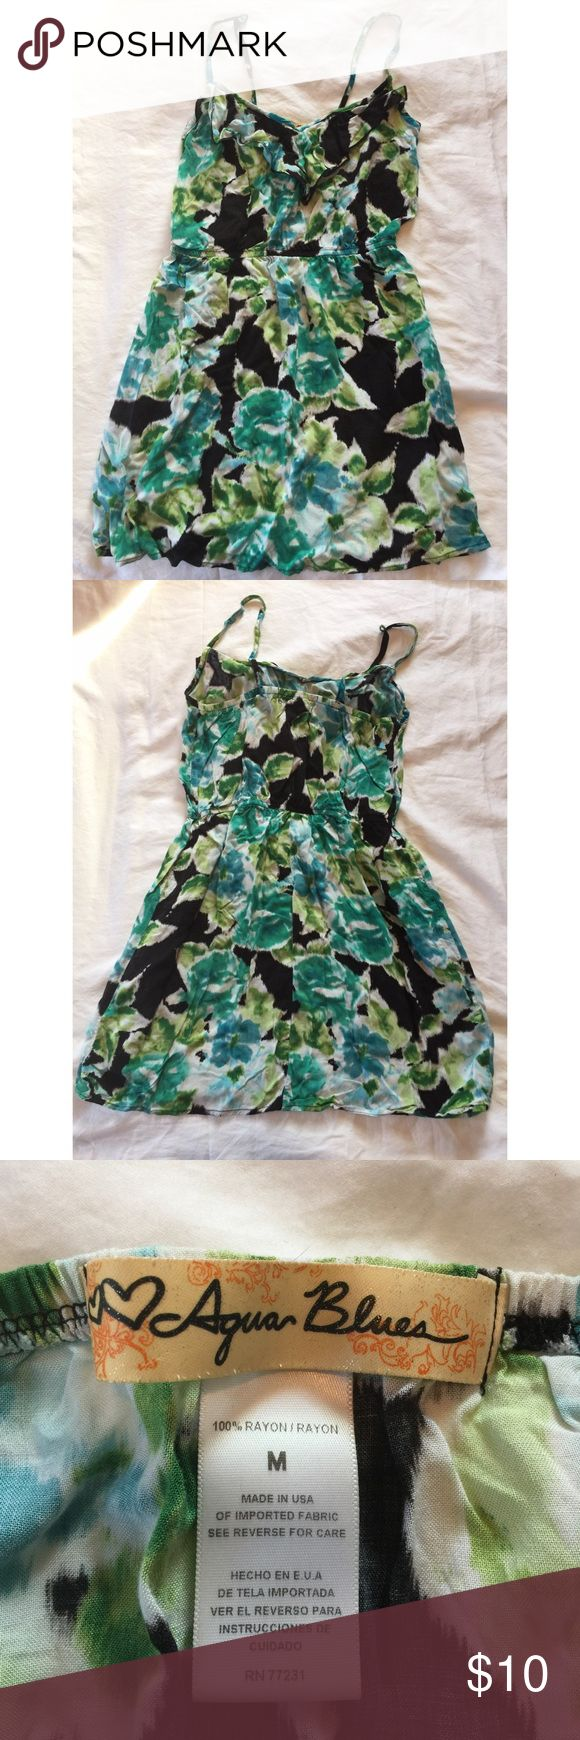 Aqua Blues floral dress This dress is perfect for the upcoming warm weather. Extremely comfortable and flattering 👗 Aqua Blues Dresses Midi